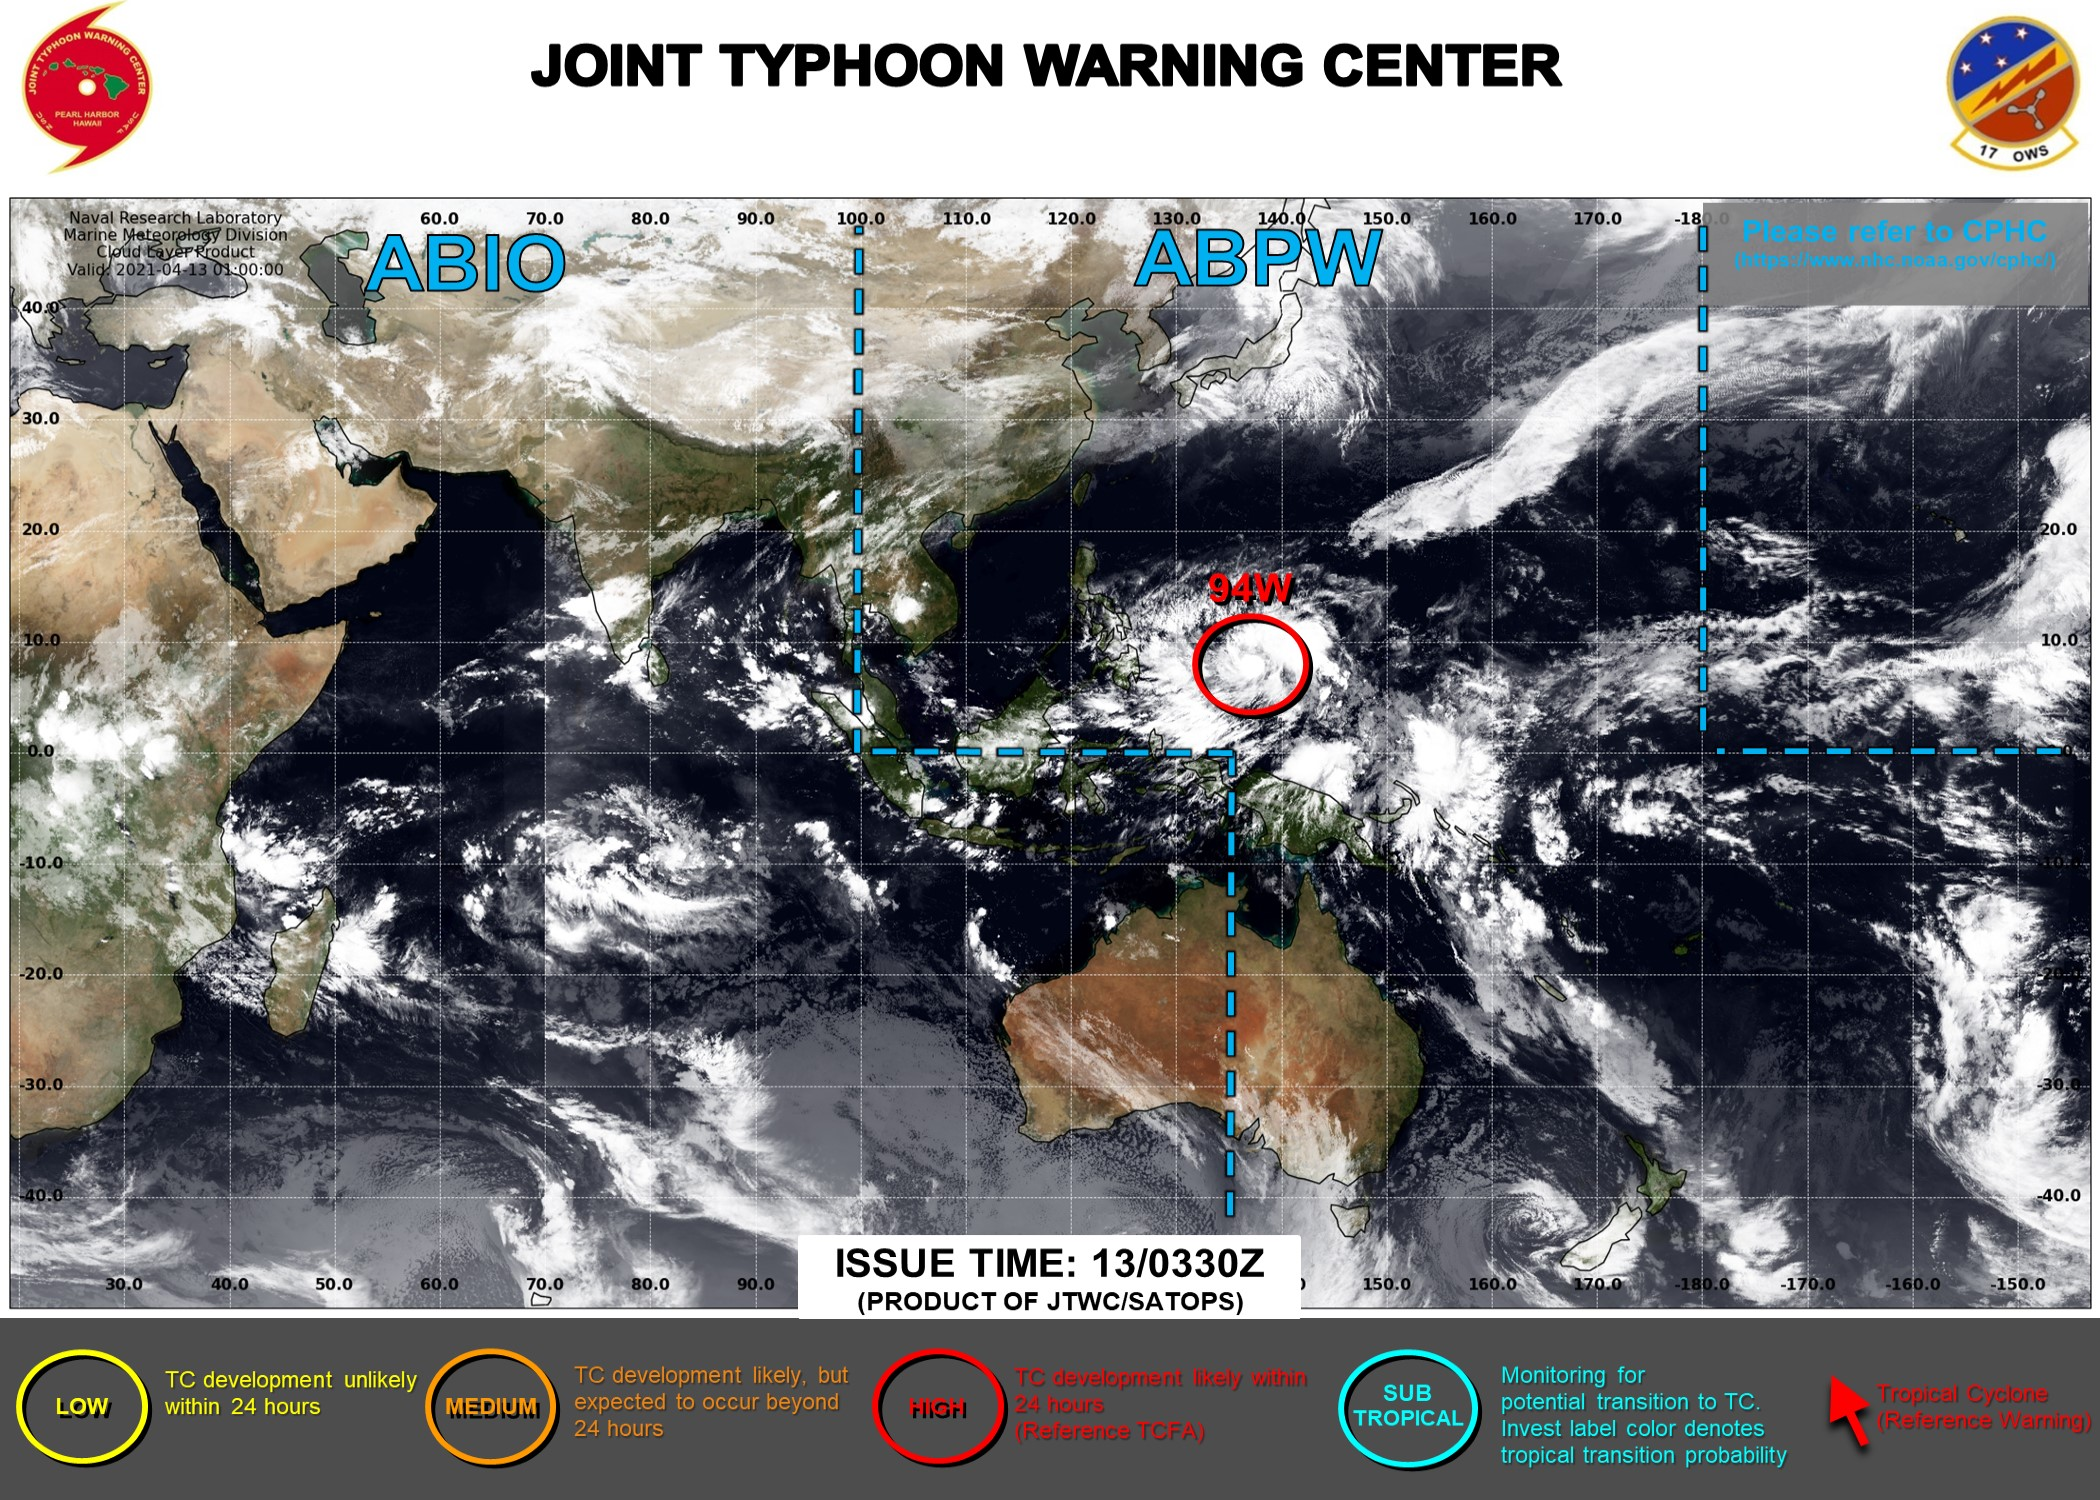 13/03UTC. INVEST 94W REMAINS HIGH FOR THE NEXT 24H. 3HOURLY SATELLITE BULLETINS ARE ISSUED ON THE SYSTEM BY THE JTWC.